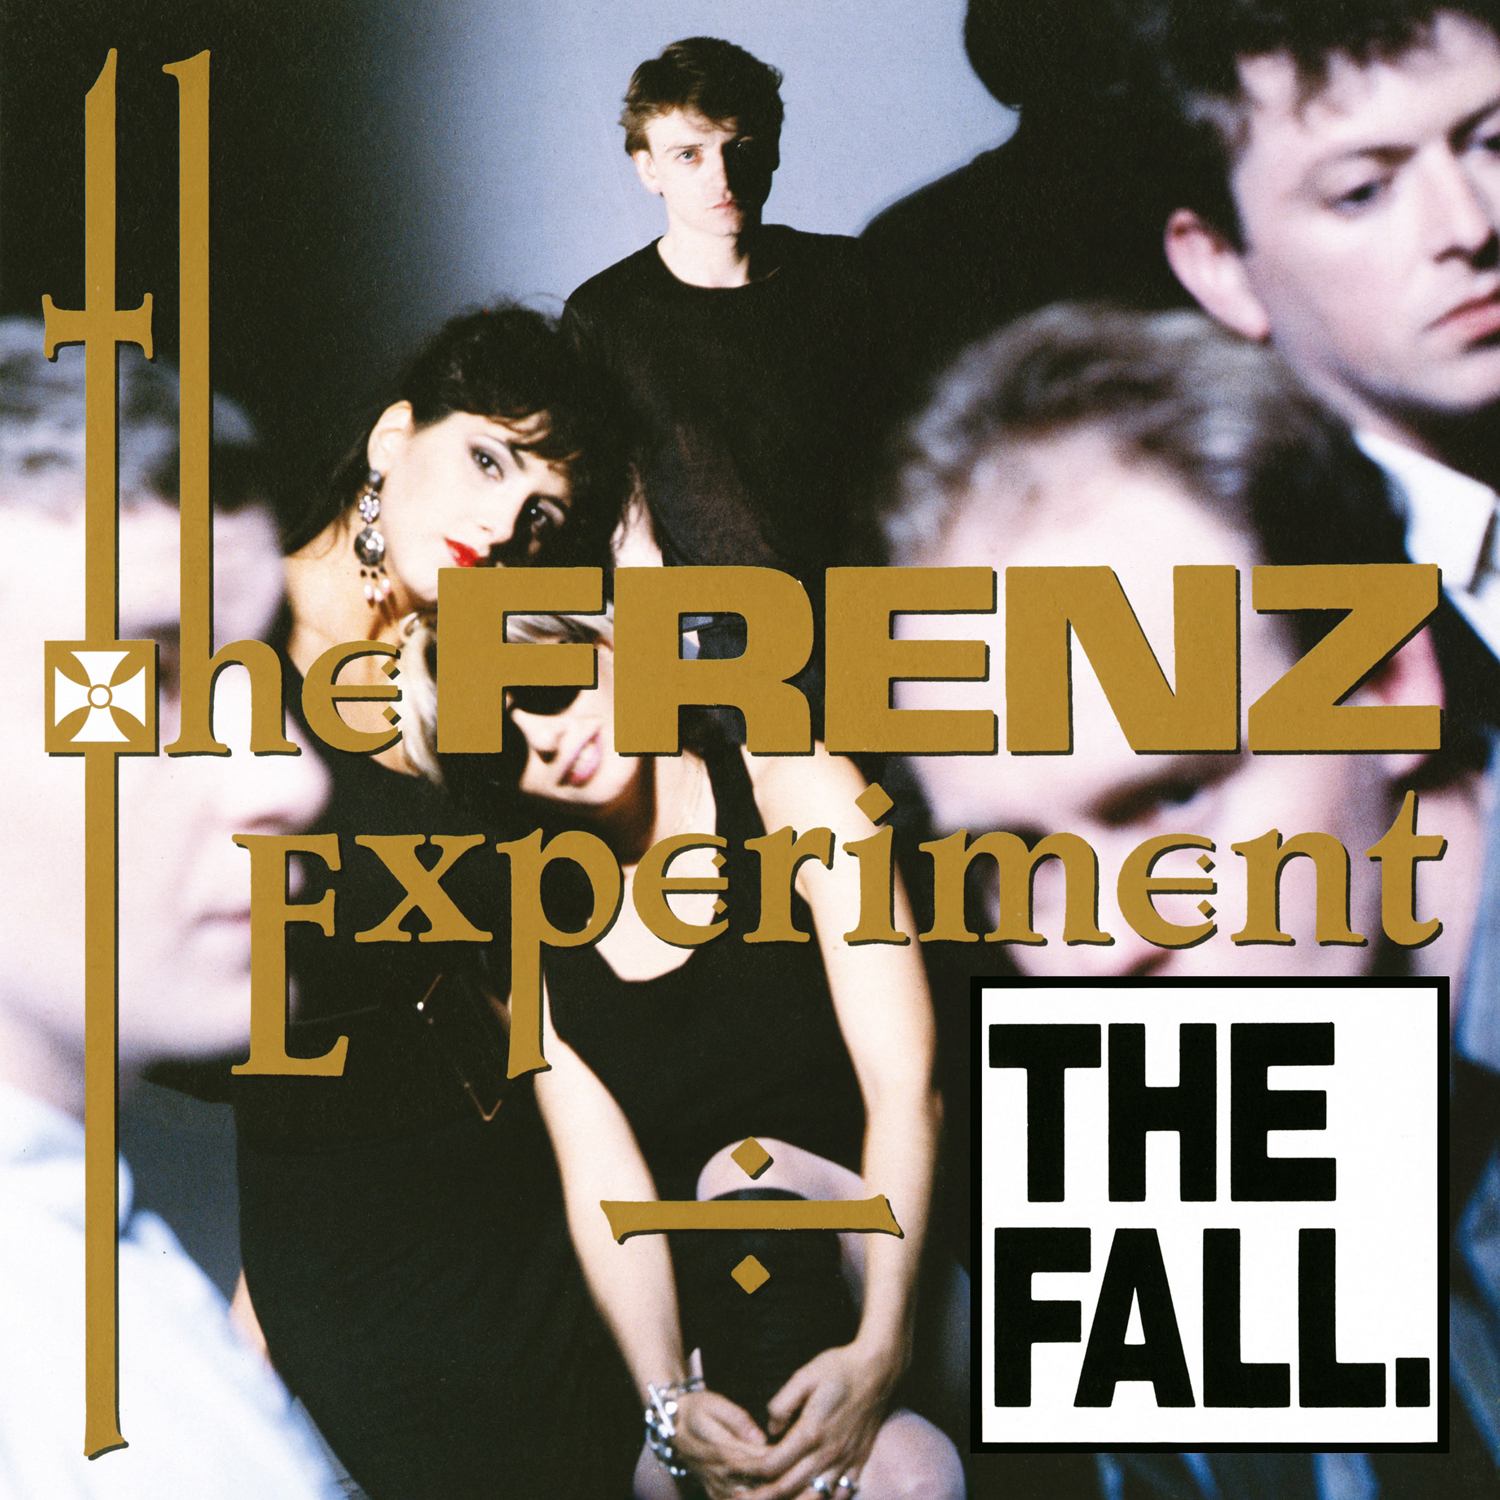 The Fall - The Frenz Experiment (Expanded Edition) [2xLP]